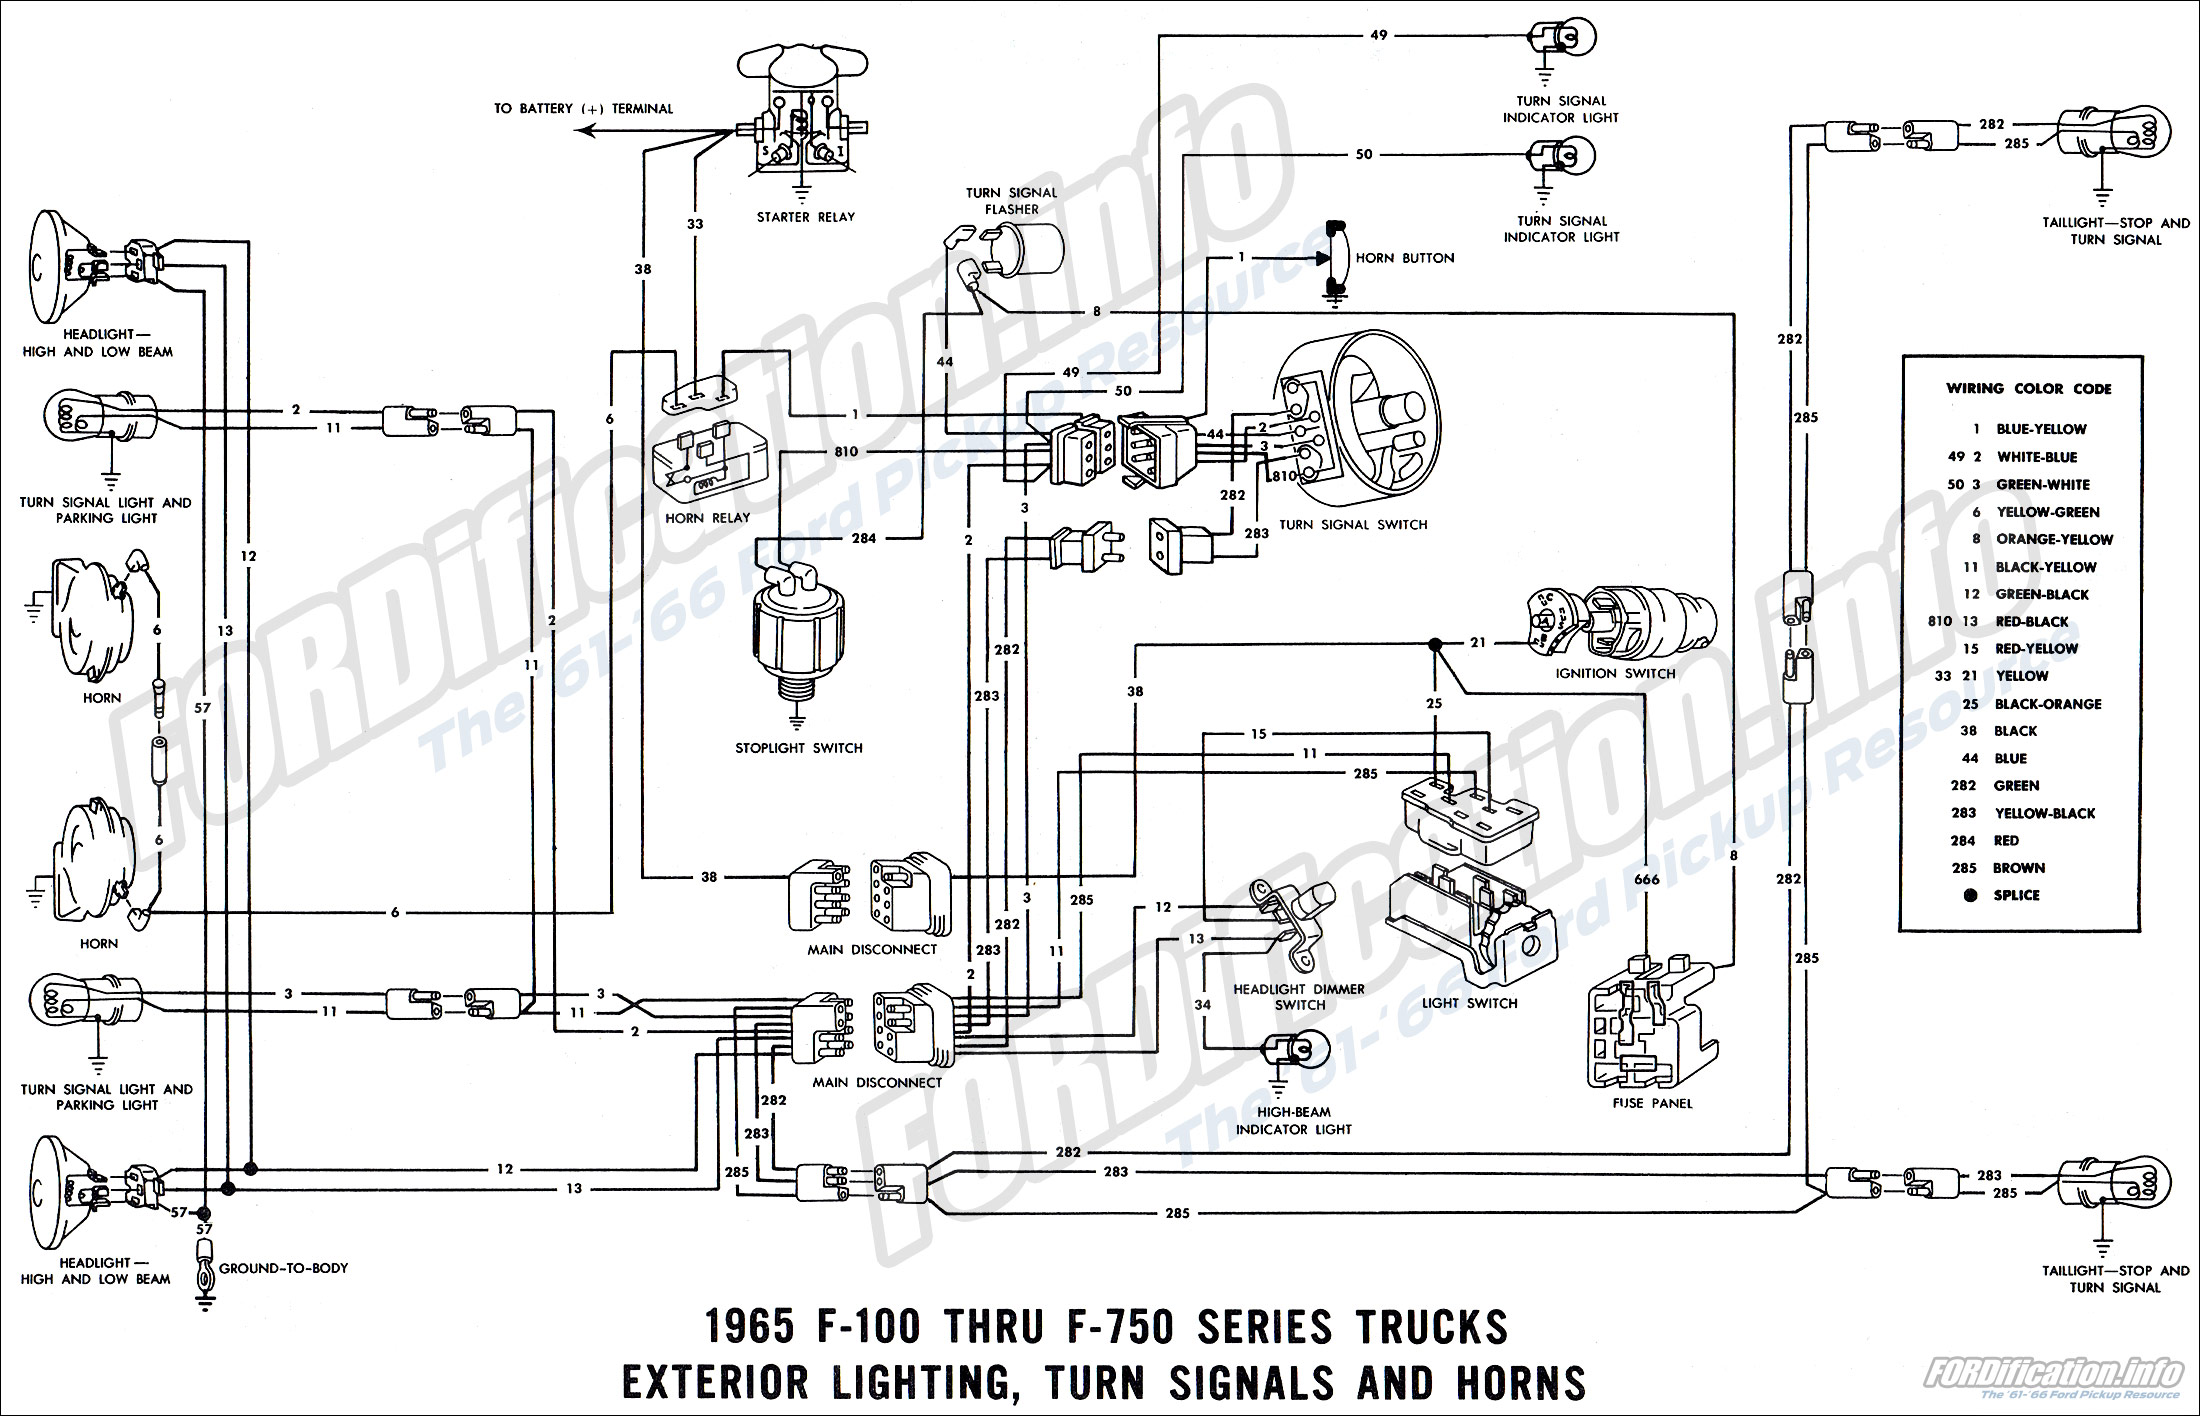 Turn Signal Wiring Diagram F 250 Will Be A Thing 1996 Fzr 600 Schematic 1965 Ford Truck Diagrams Fordification Info The 1978